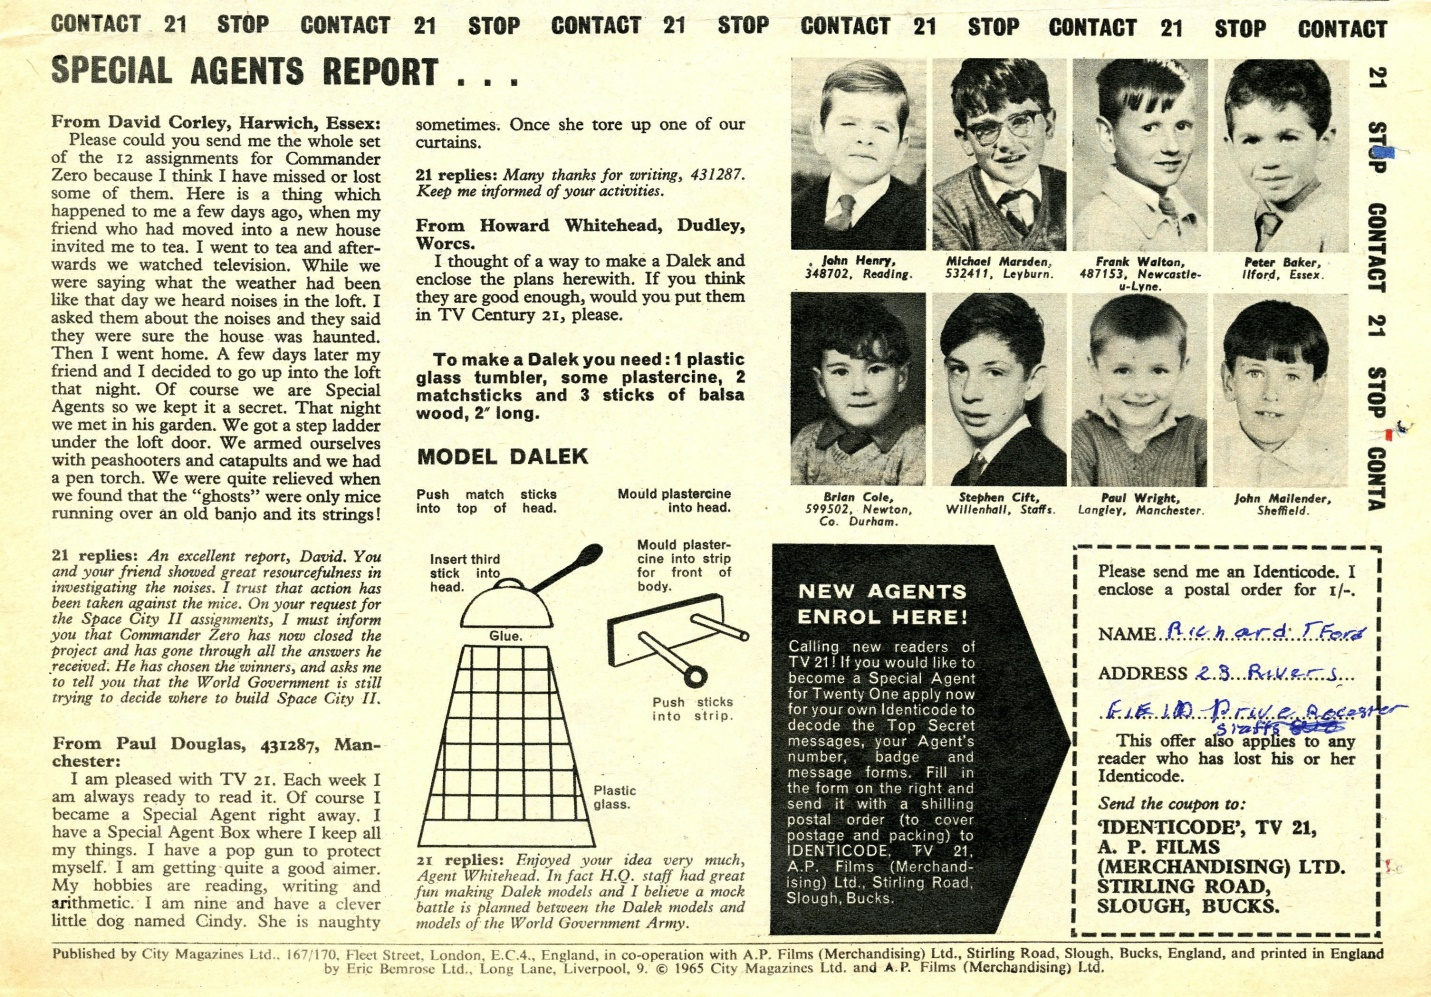 TV Century 21 #17 with instructions on building a model Dalek